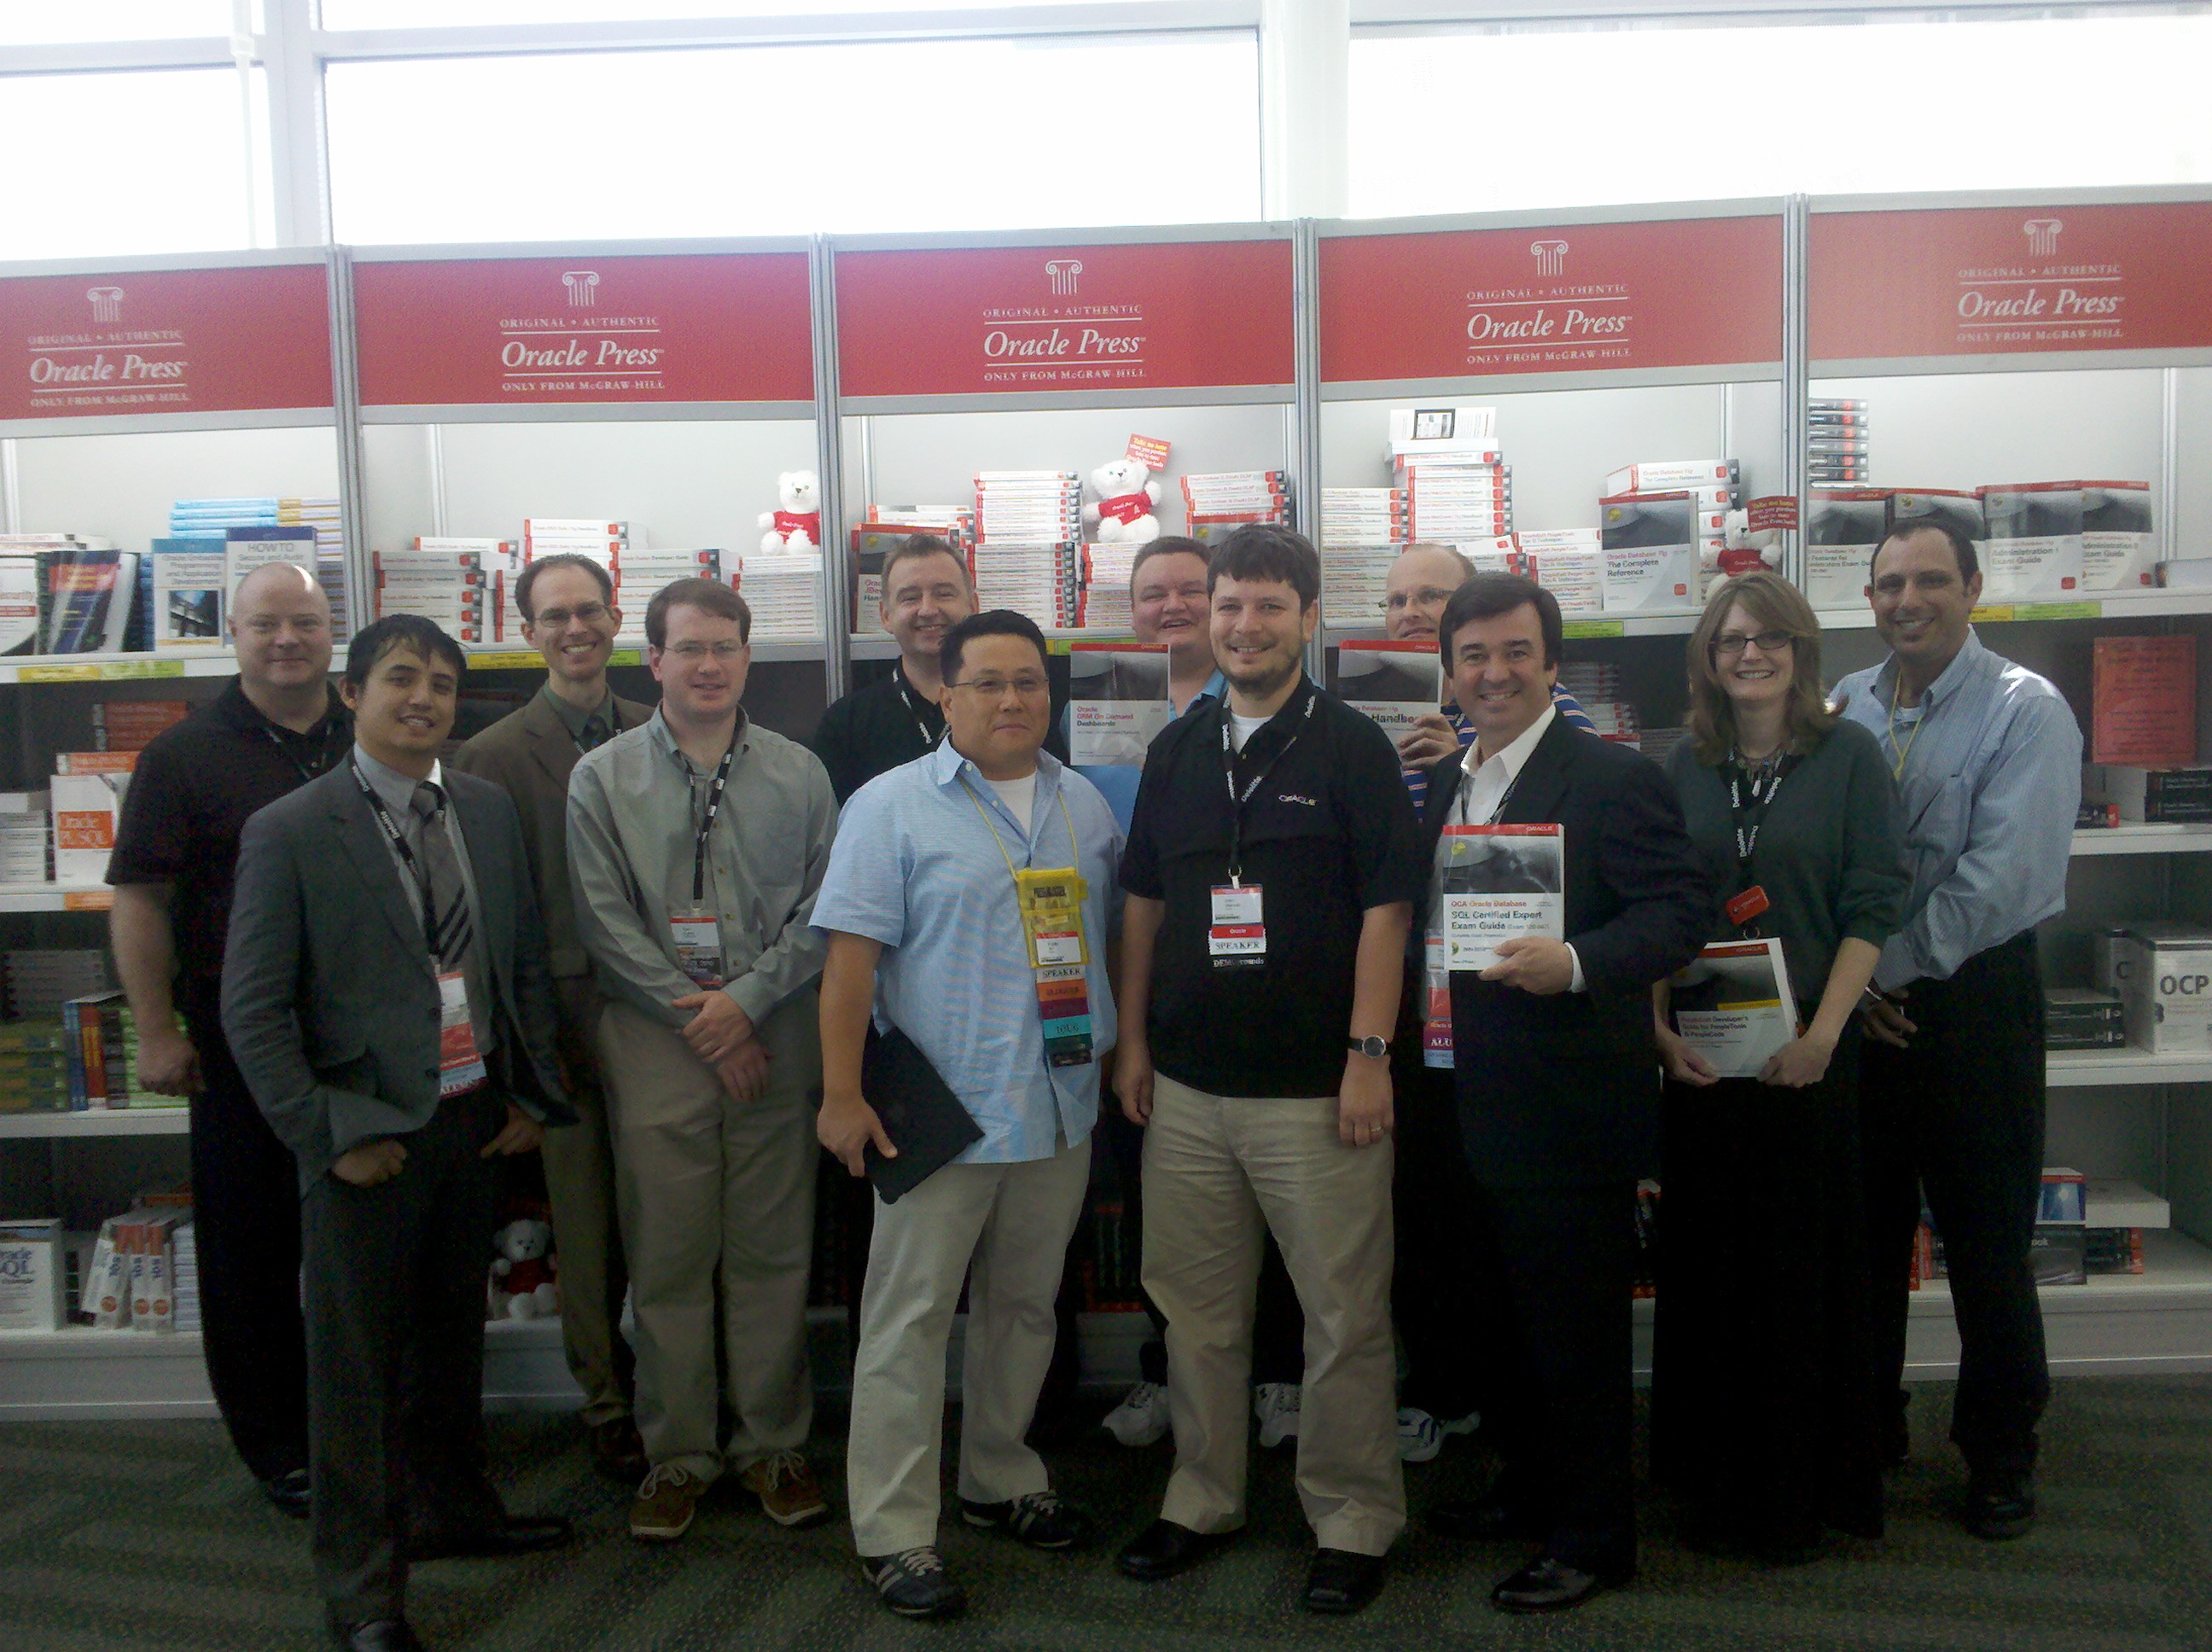 Steve o hearn of corbinian is third from the right holding a copy of his latest work oracle sql expert certification exam guide from oracle press